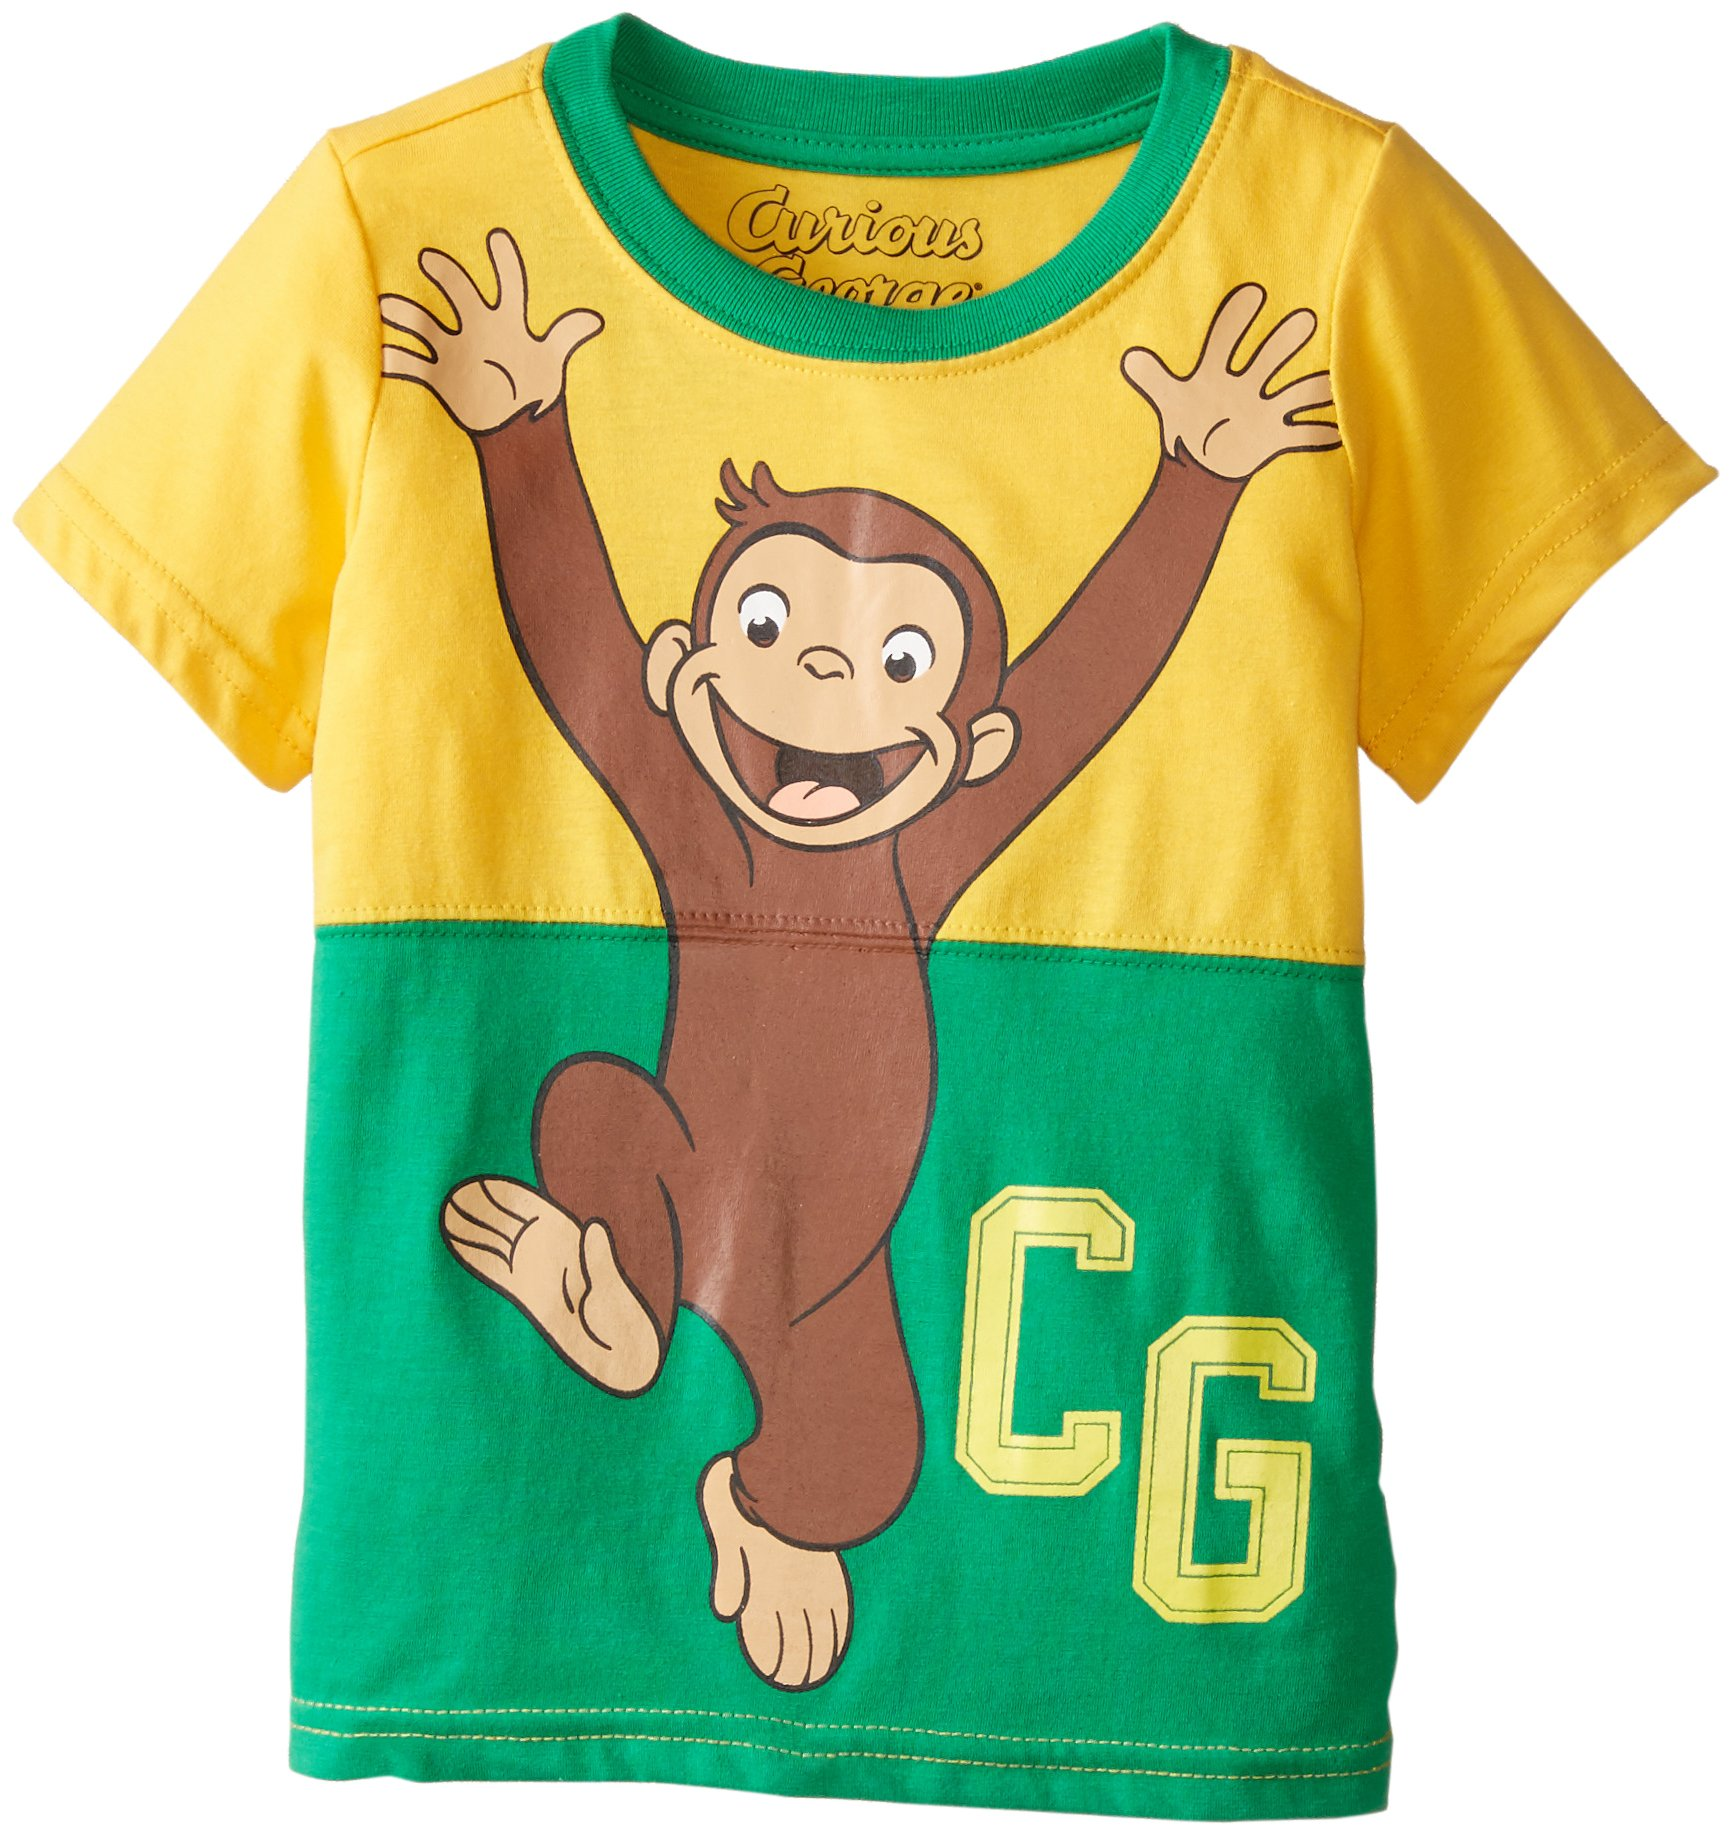 Curious George Little Boys' Toddler Short Sleeve T-Shirt, Yellow/Green, 2T